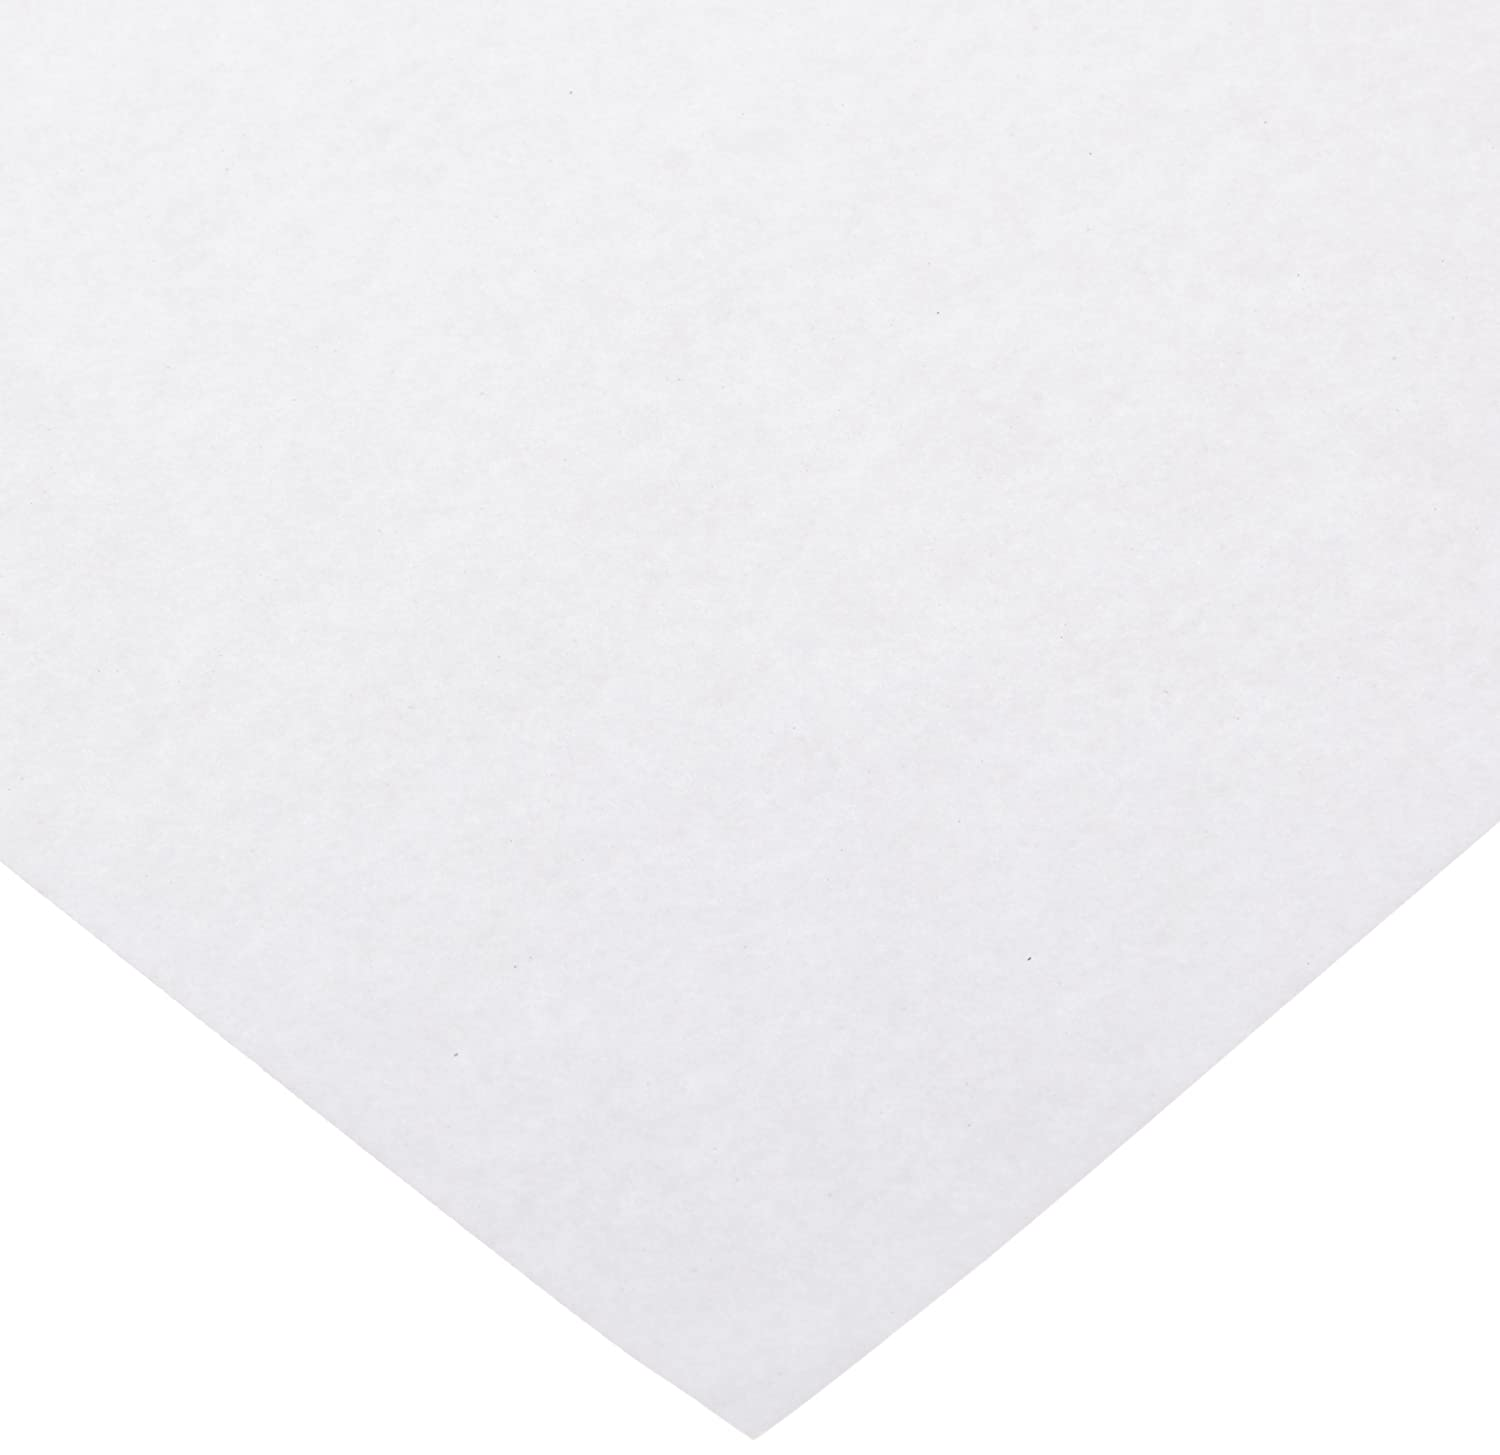 Sax 206321 Drawing Paper - 90 pound - 9 x 12 inches - 500 Sheets - White School Specialty